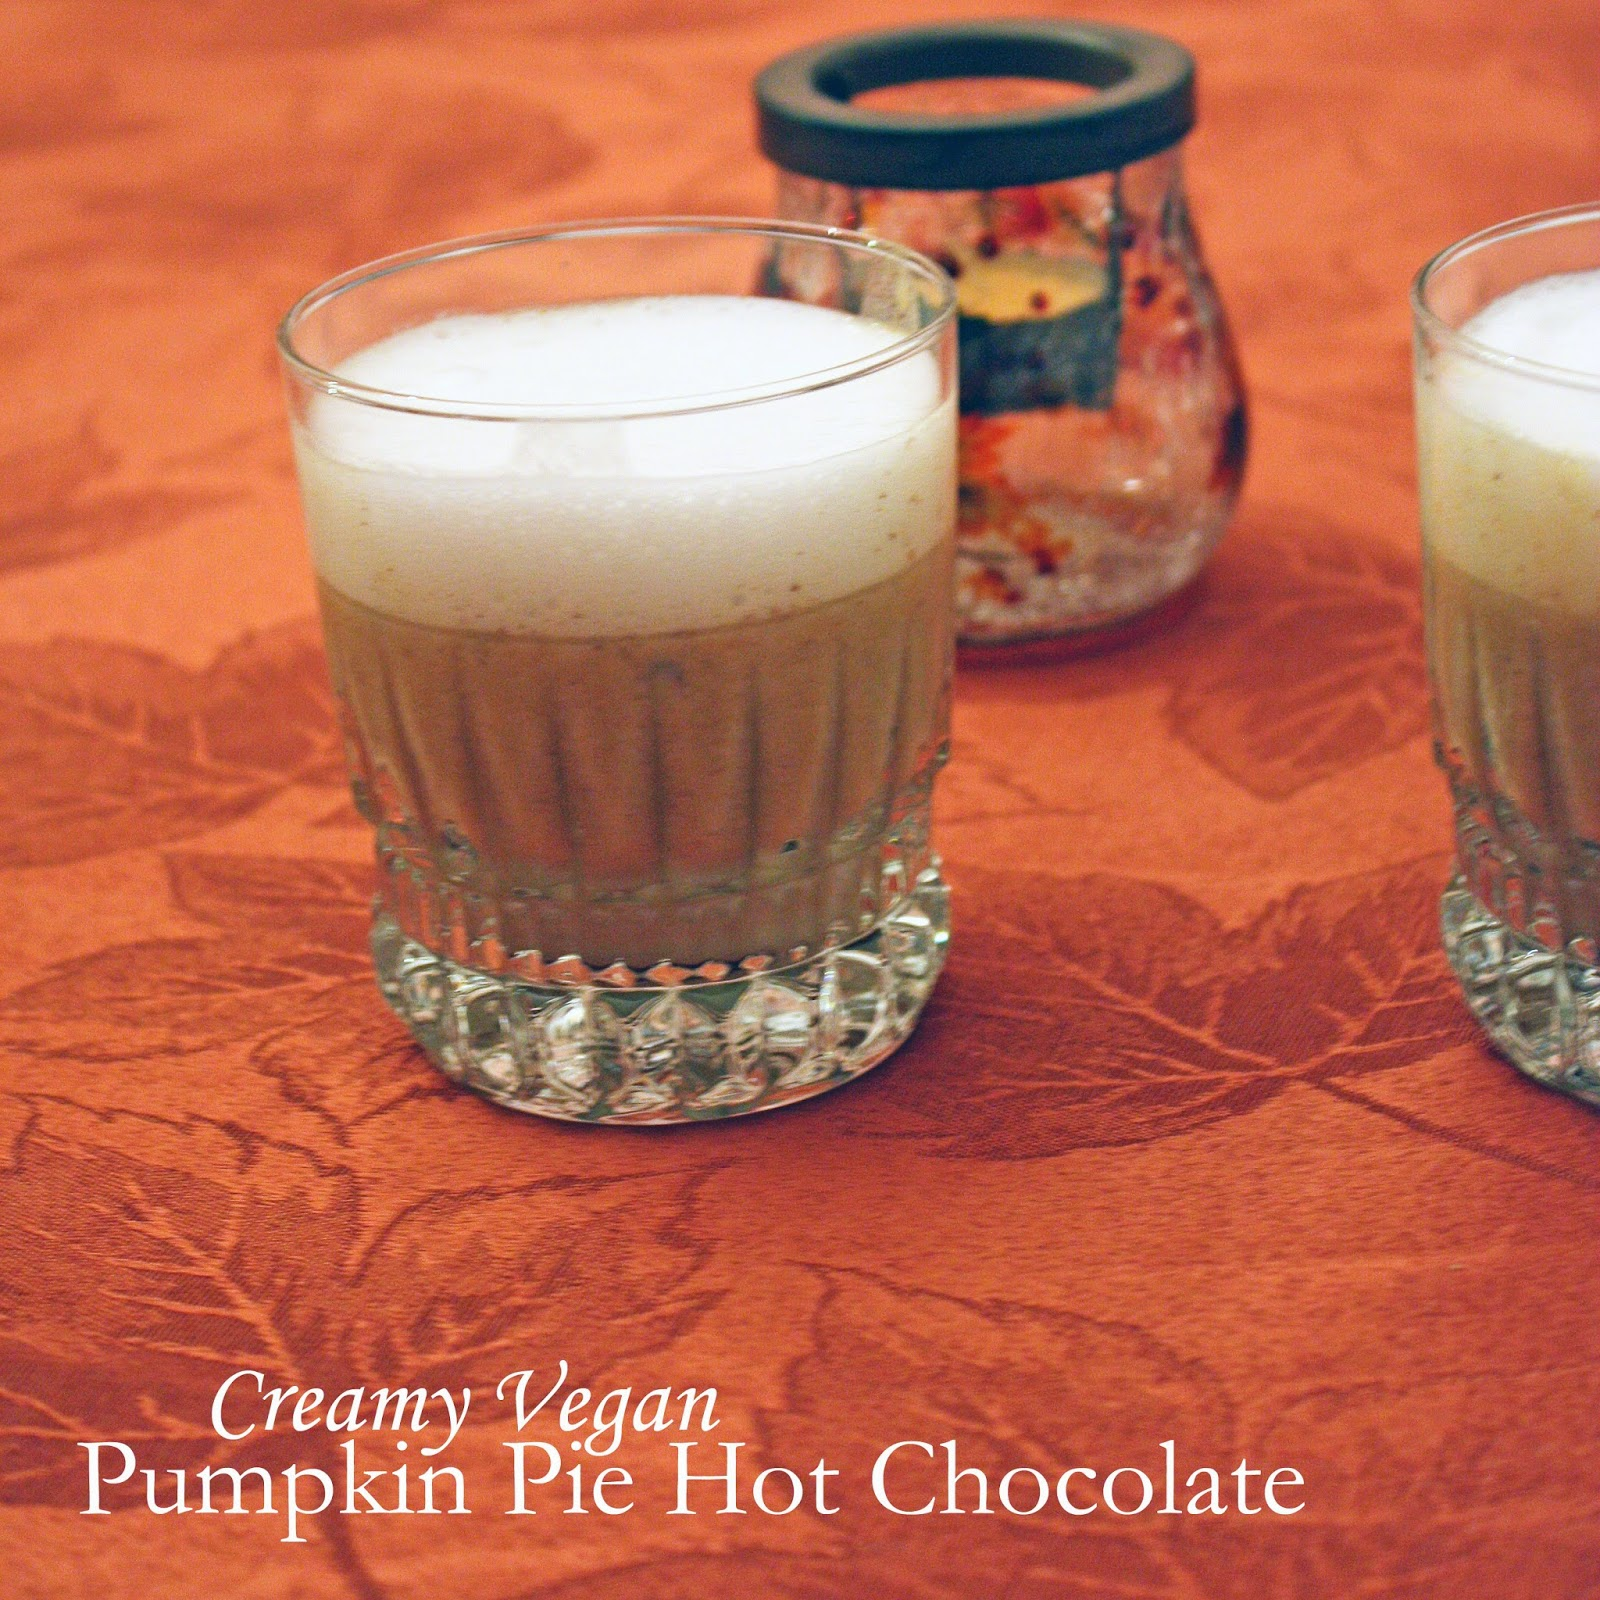 Creamy vegan pumpkin pie white hot chocolate